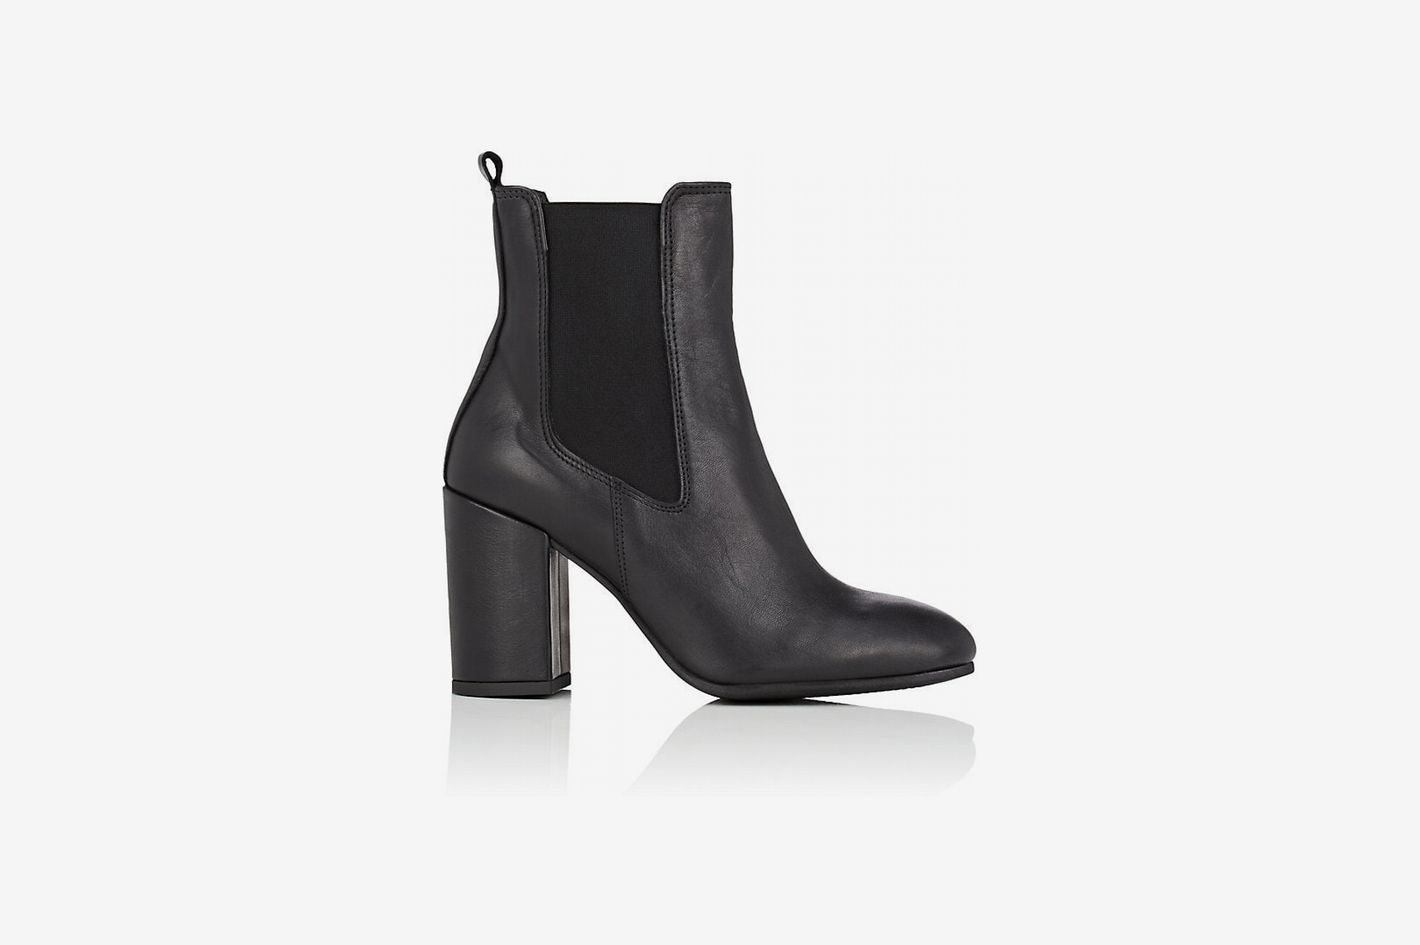 Barney's New York Leather Chelsea Boots